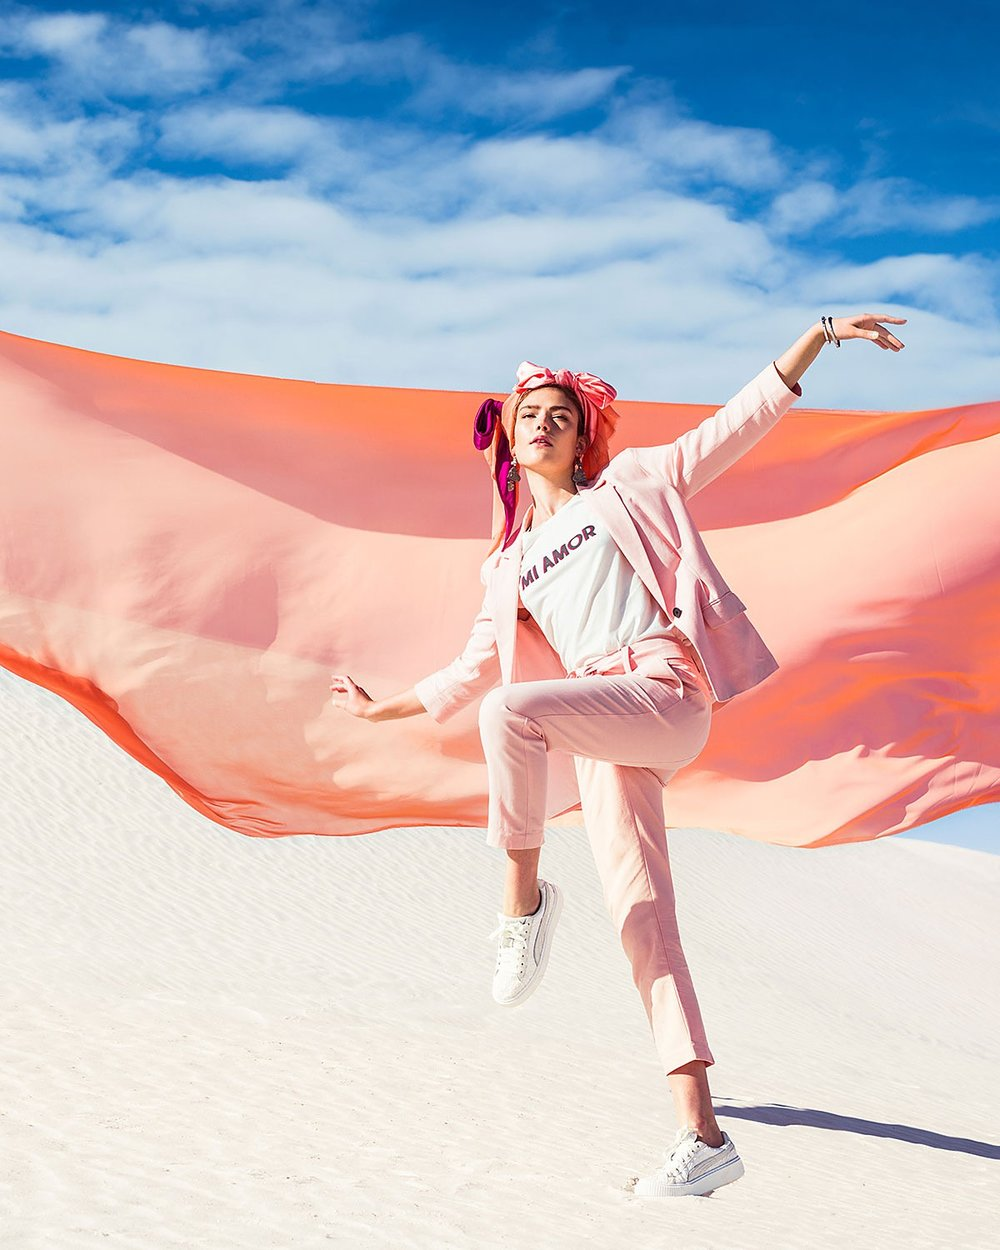 Second Shoot in White Sands: Bloomingdales March Catalogue. Shot by Elizaveta Porodina